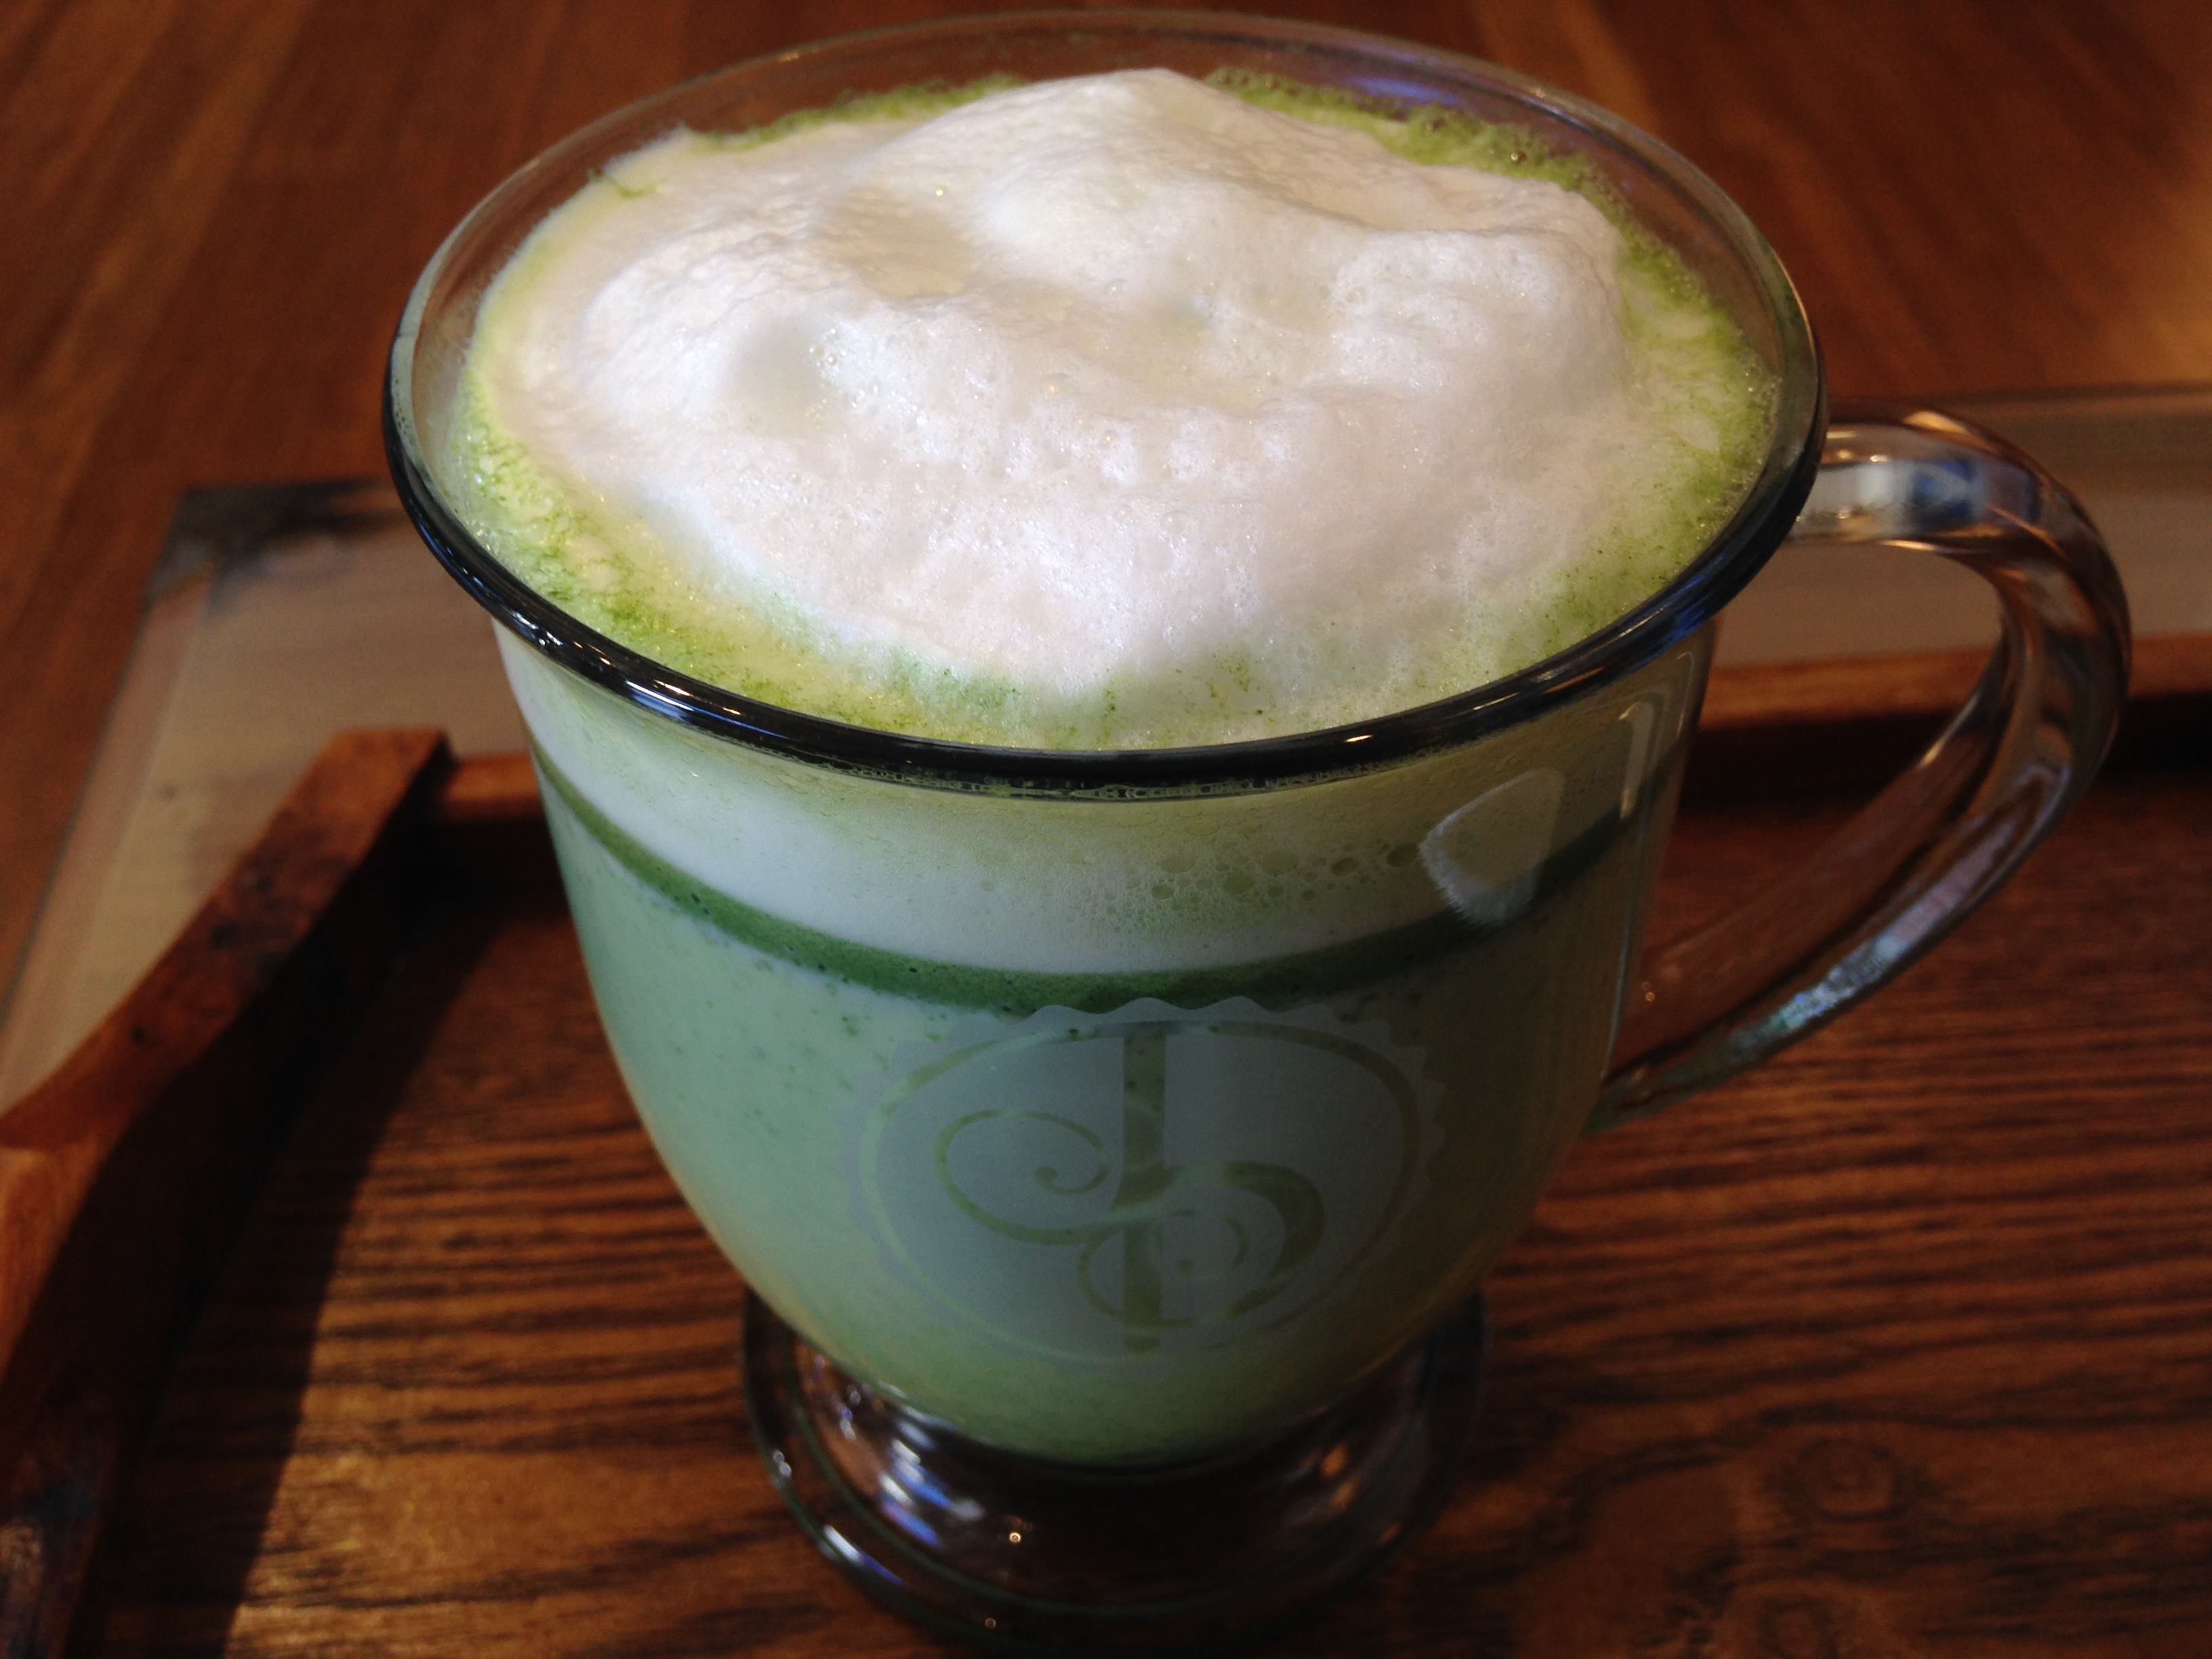 Macha tea latte at Jasmine Pearl Tea Company, photo by Carrie Uffindell